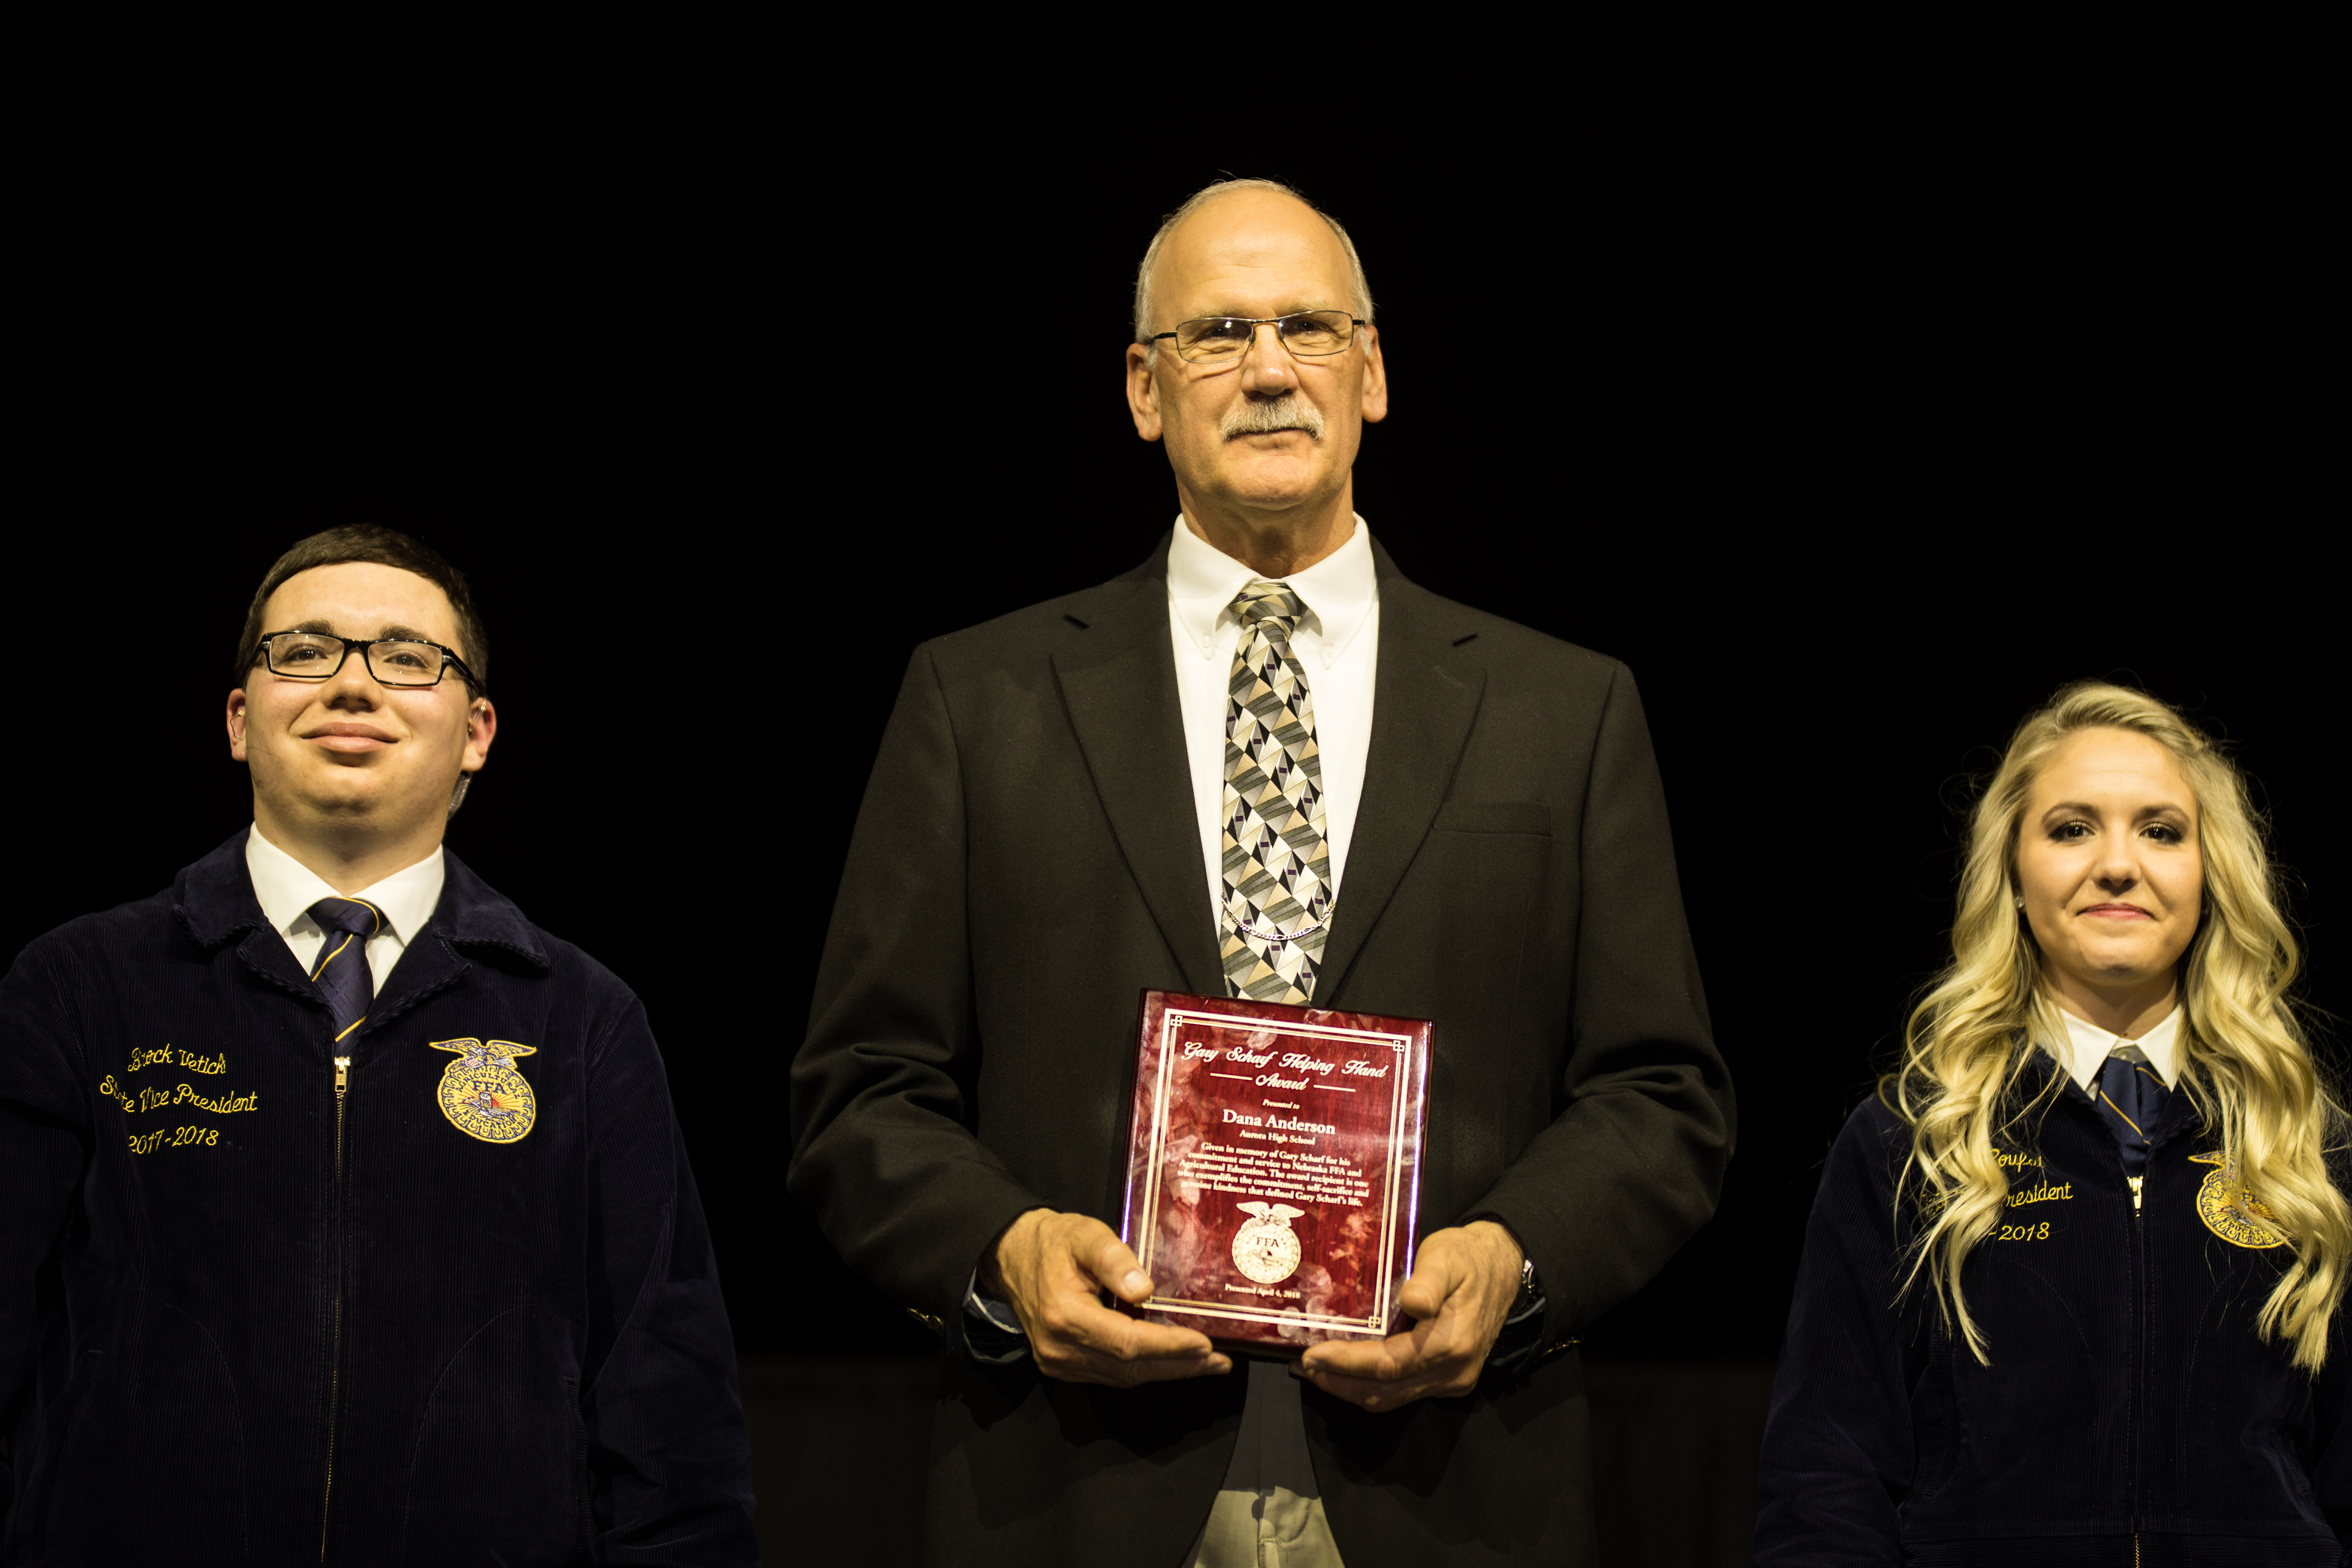 Anderson Recognized for Support to Aurora Community and School